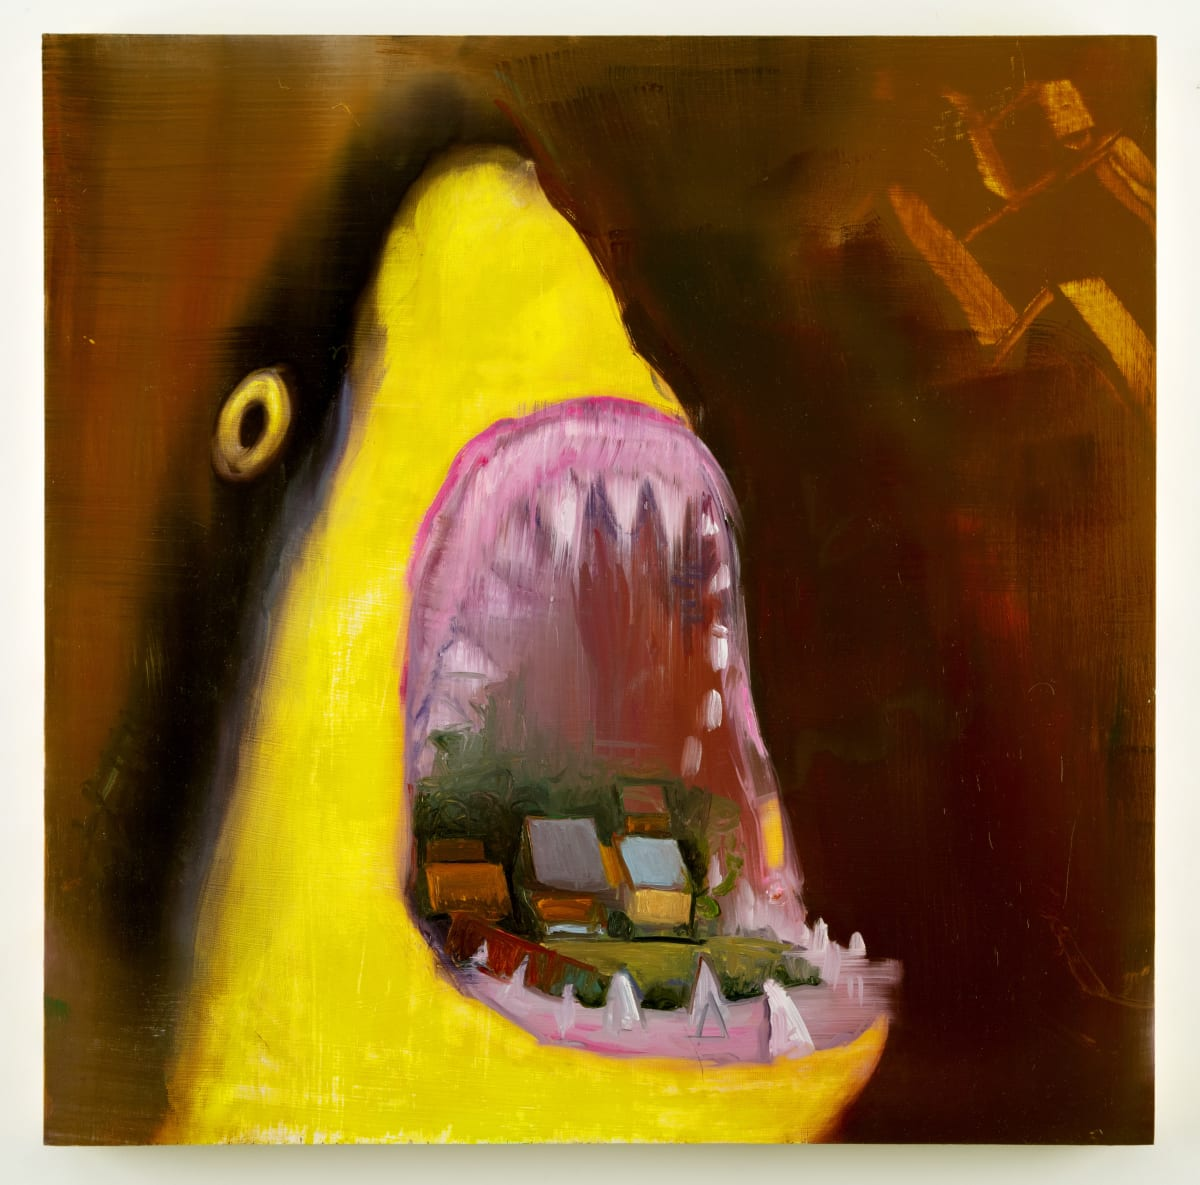 Abstract painting on canvas in shades of yellow, brown, black, green, blue and red. The painting depicts a close up of a shark with its mouth open, revealing a small town inside.